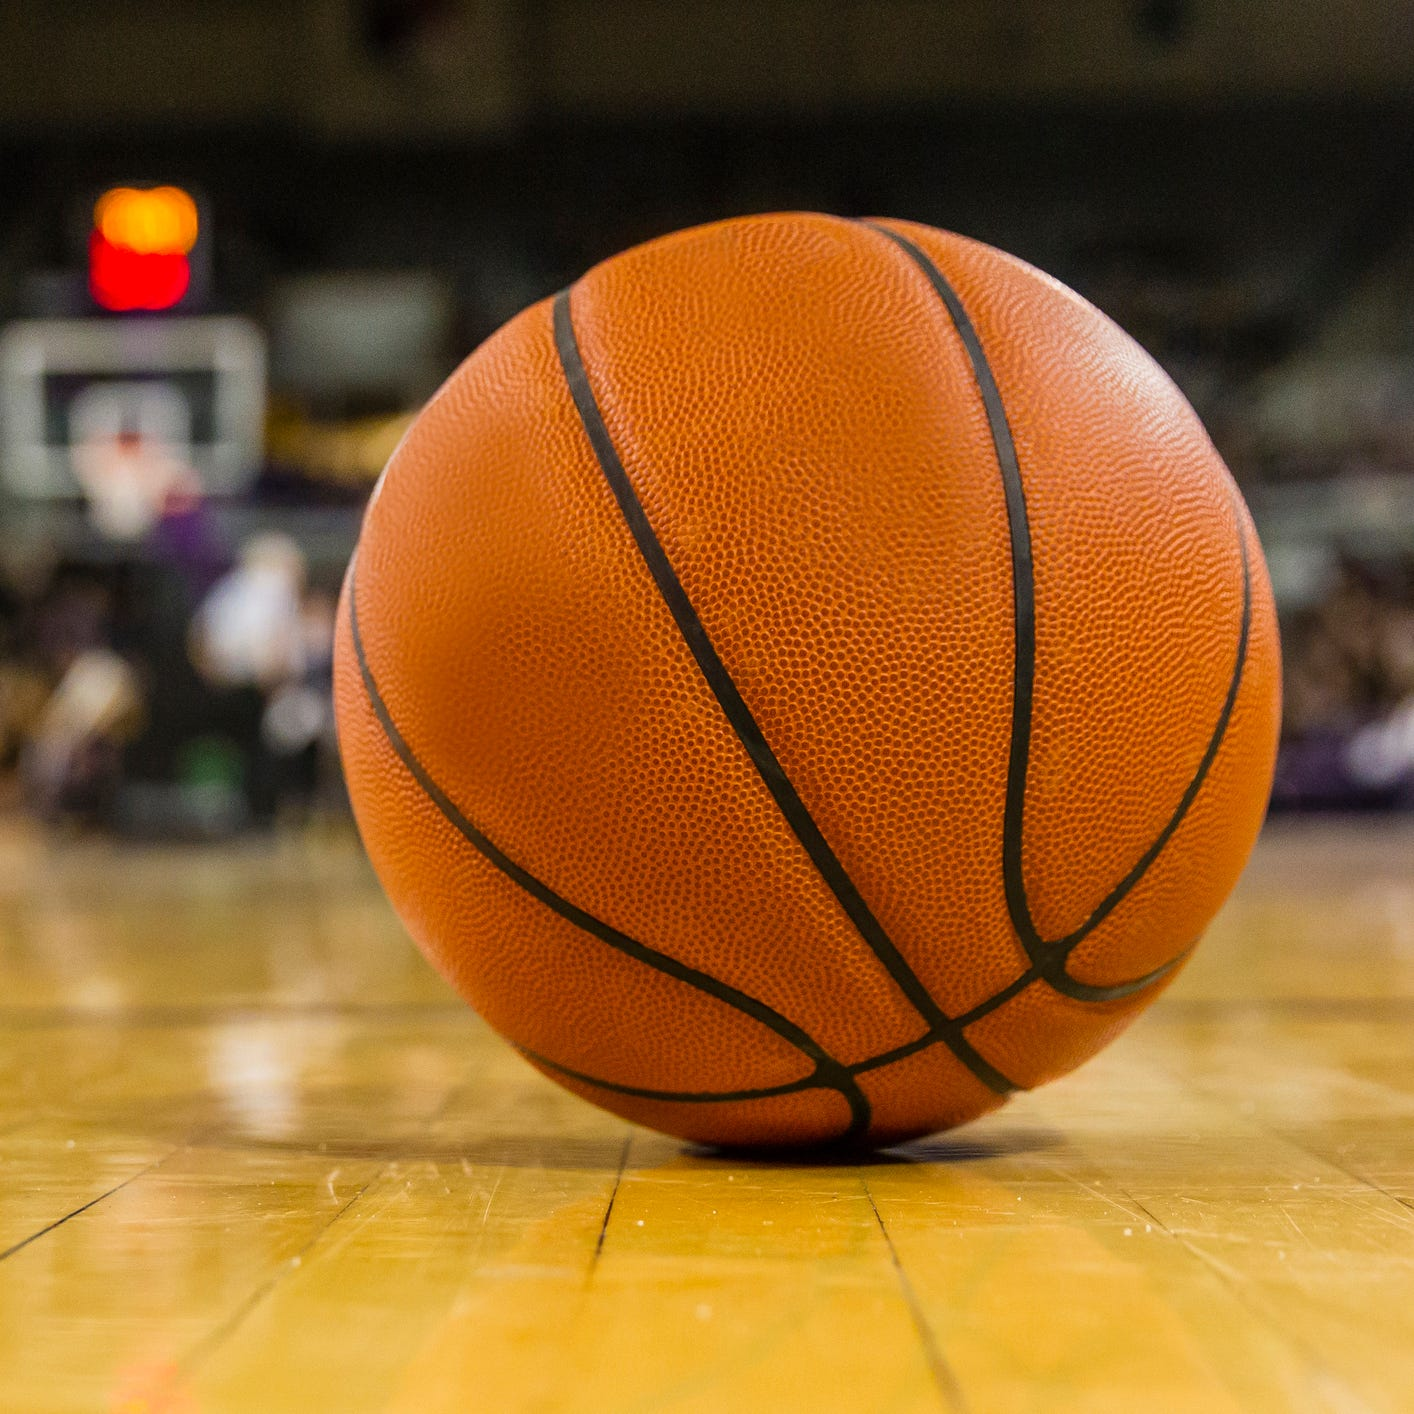 UWSP roundup: Men's basketball hands Whitewater first loss